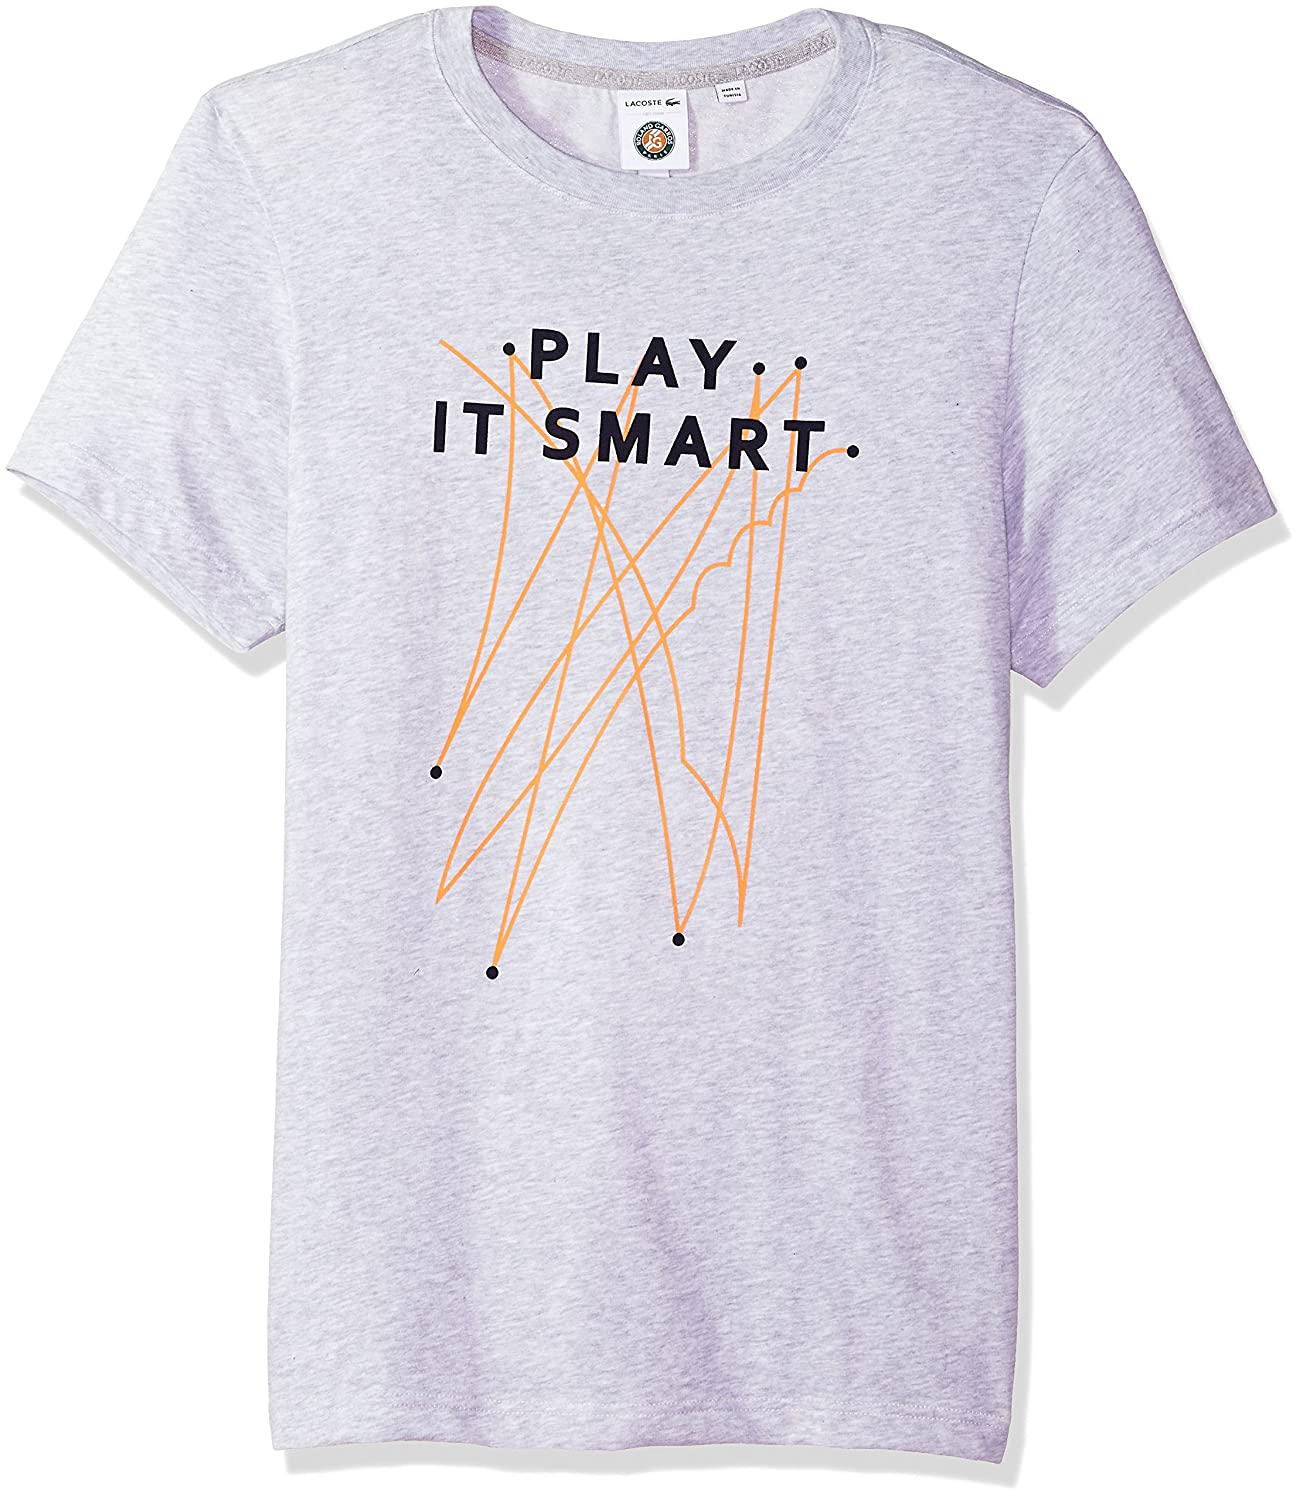 Lacoste Mens Short Sleeve Jersey Tech with Play It Smart Graphic T-Shirt TH3352